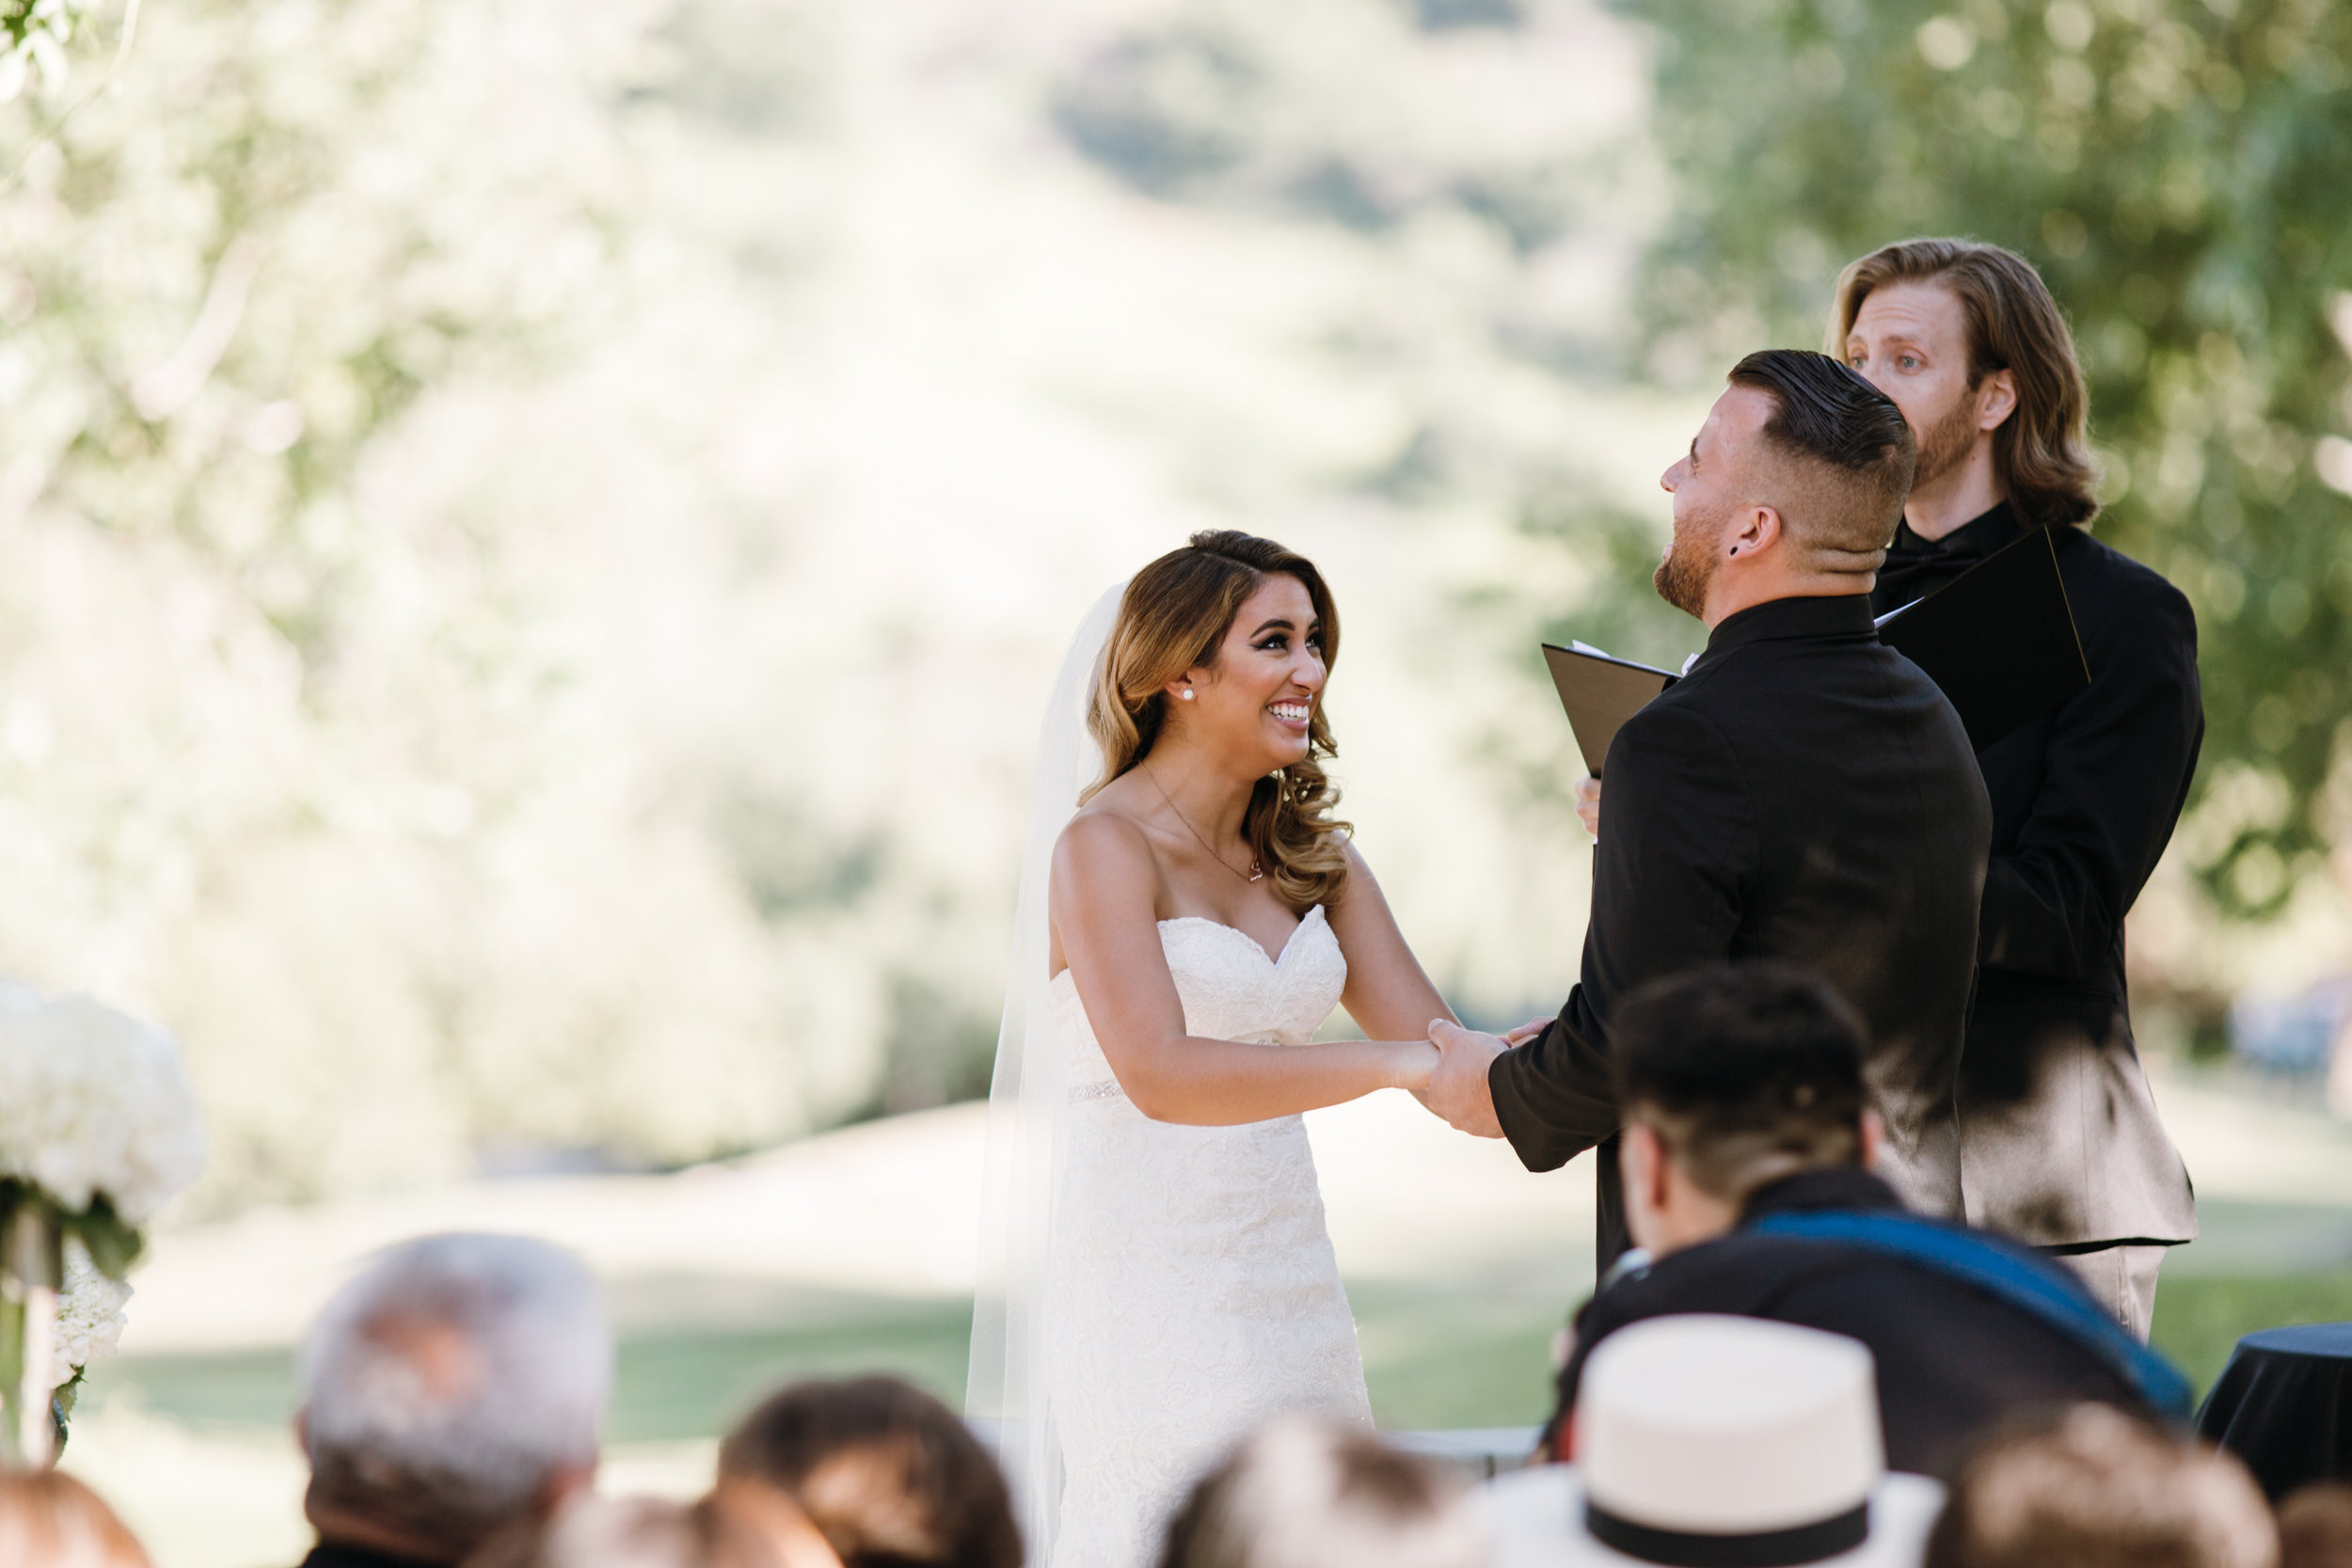 KaraNixonWeddings-CoyoteHillsGolf-Fullerton-Wedding-40.jpg